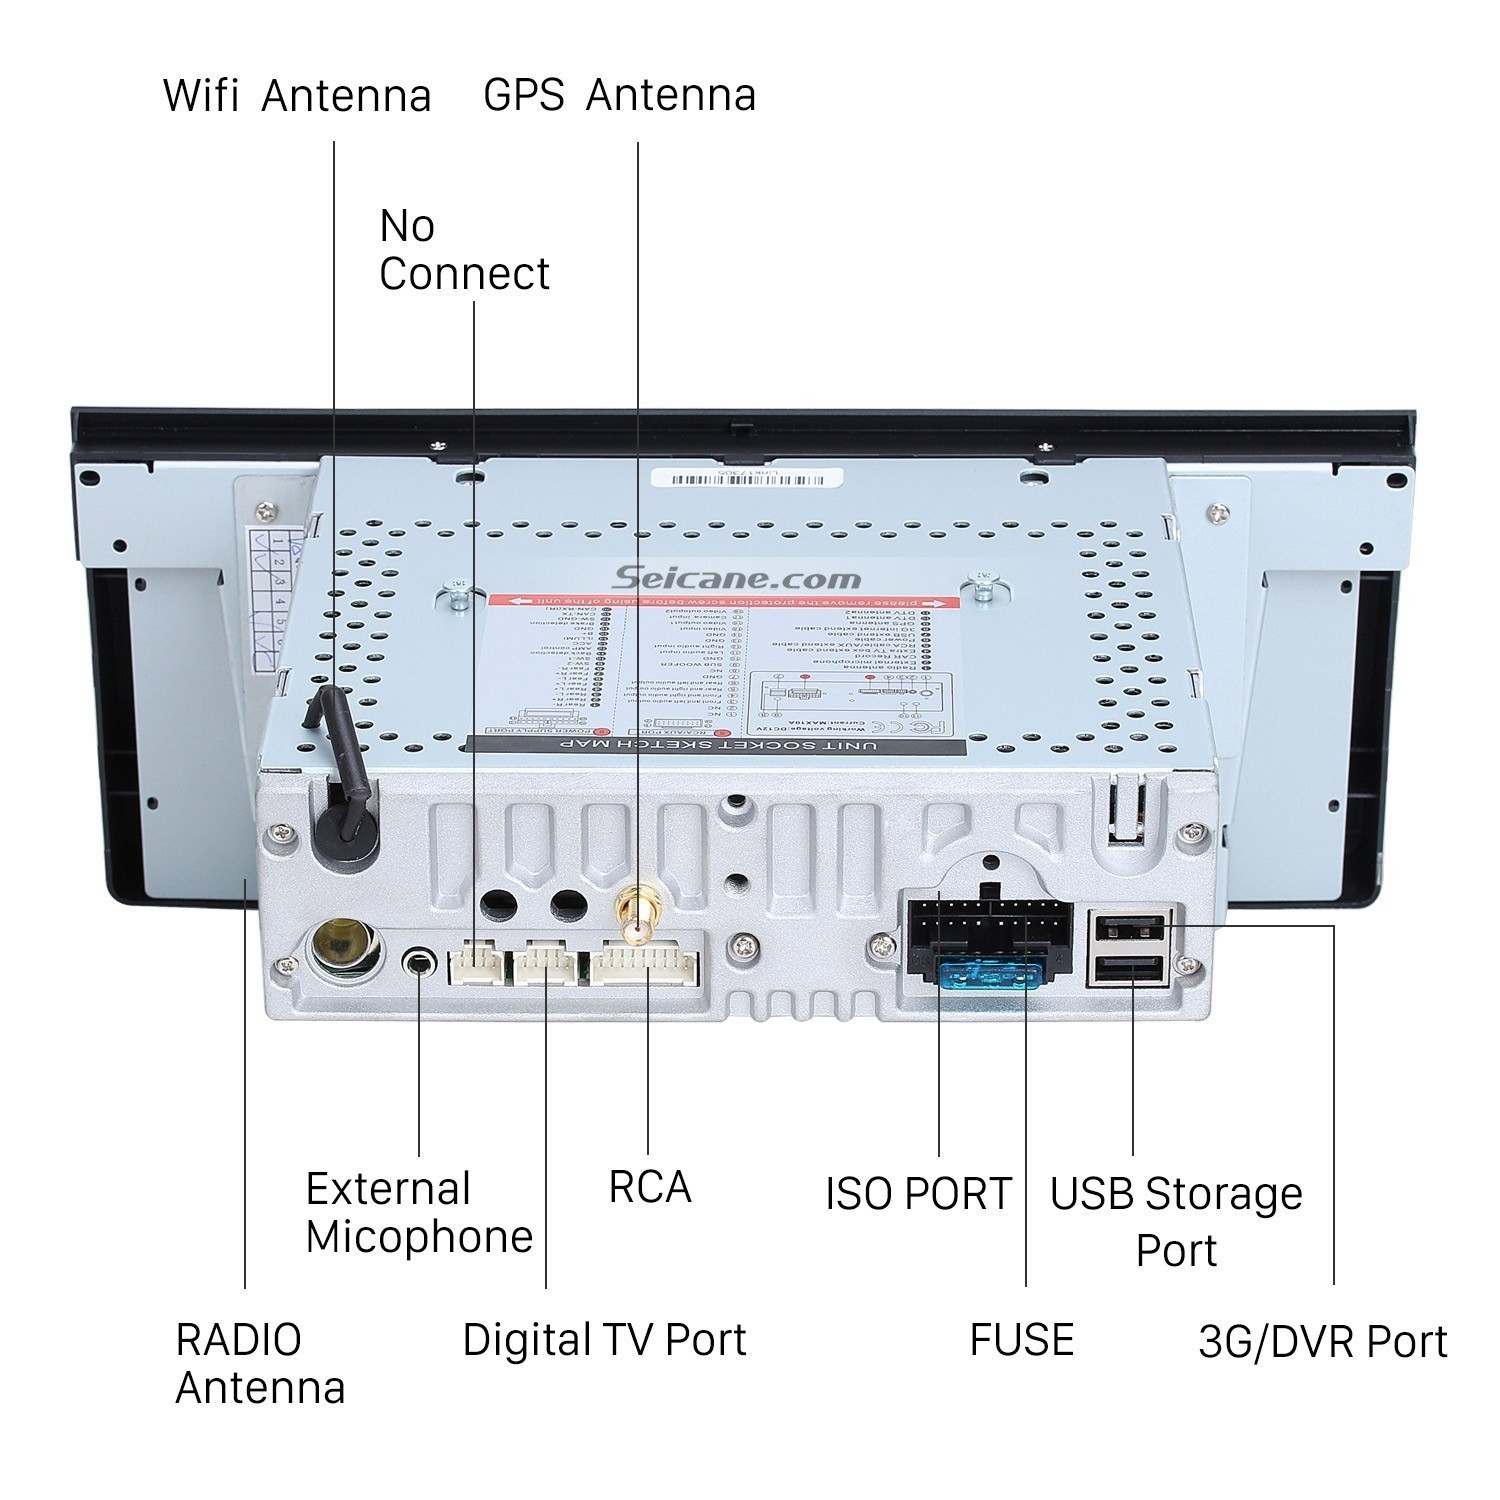 silverado wiring diagram Collection-jaguar wiring diagram Car Stereo Wiring Diagram Unique Cheap All In e android 6 0 2-g